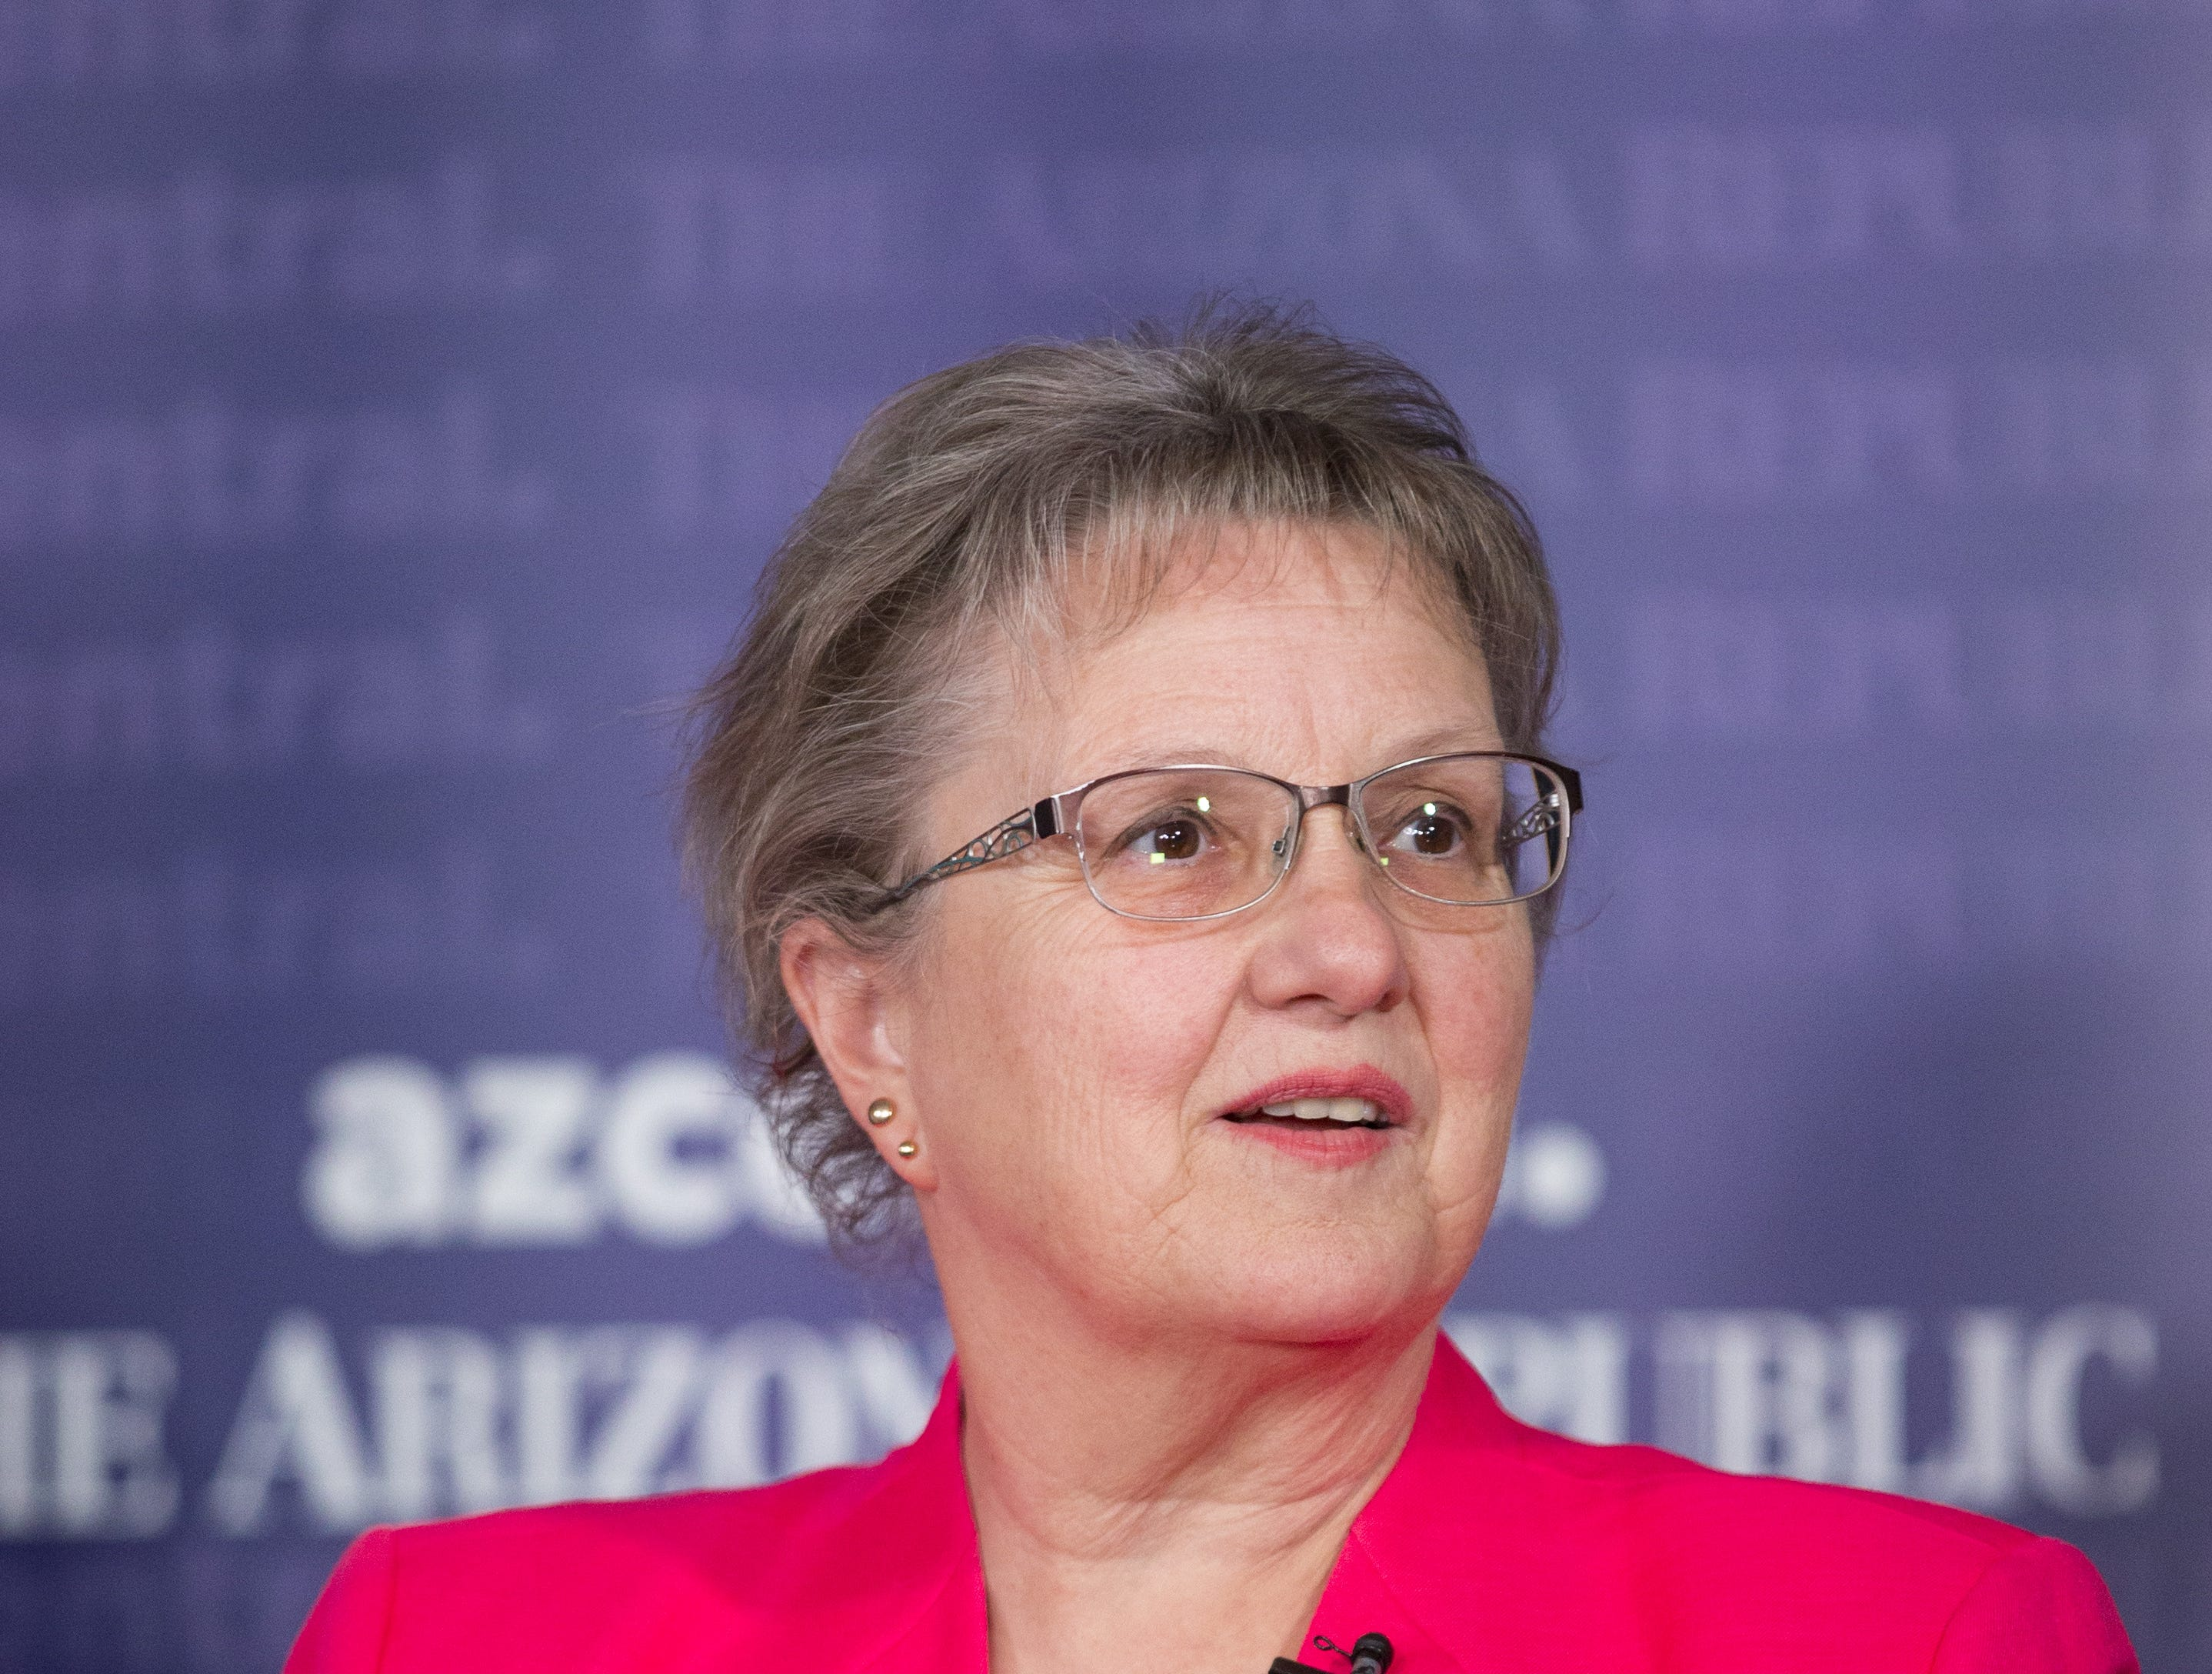 Diane Douglas, who is running for re-election for state superintendent of public instruction, speaks during a debate at azcentral.com on August 1, 2018.